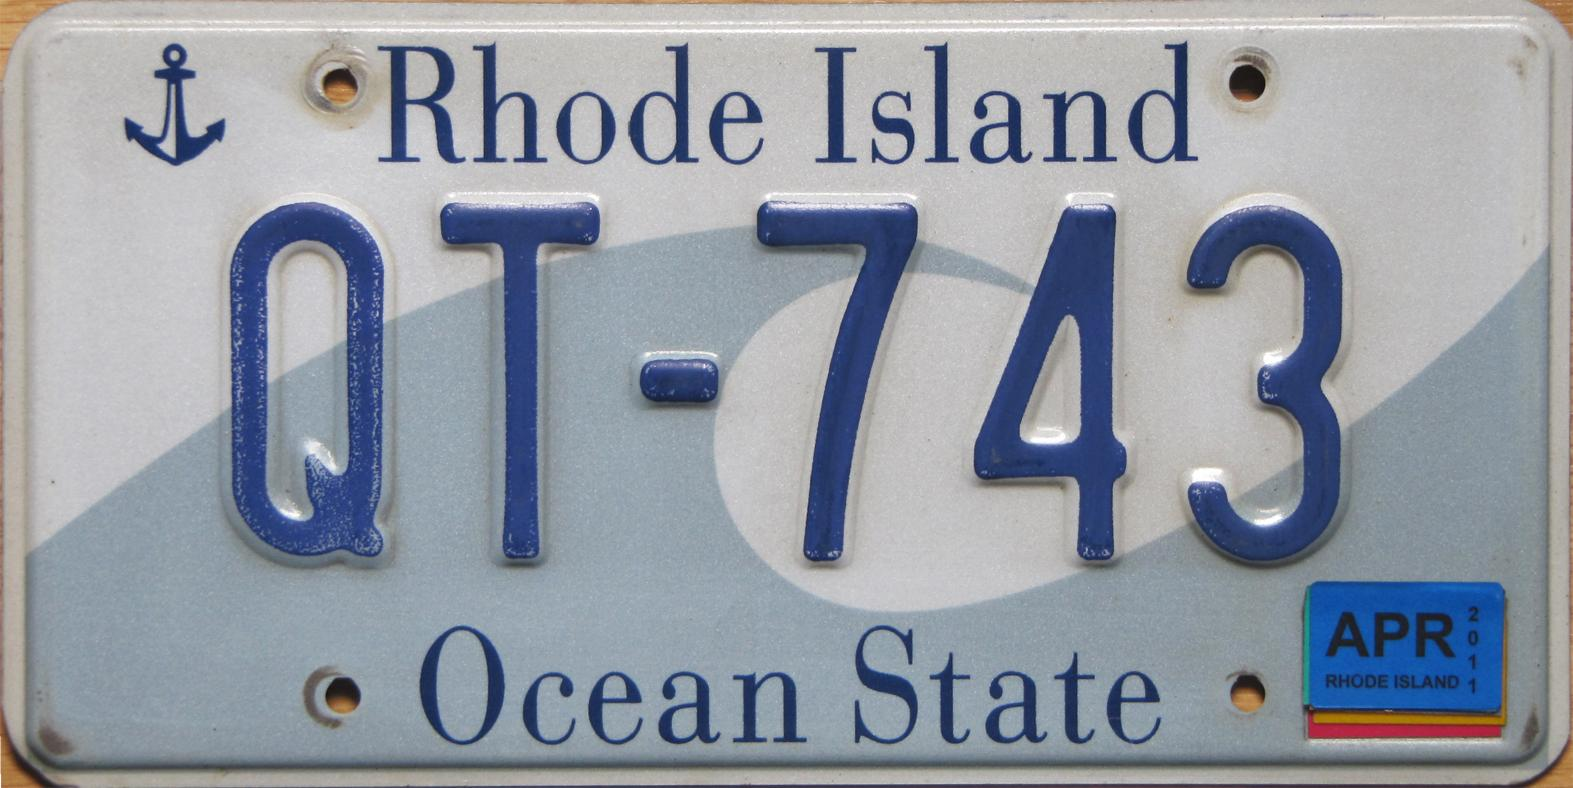 Rhode island department of motor vehicles vanity plates for Florida state department of motor vehicles orlando fl